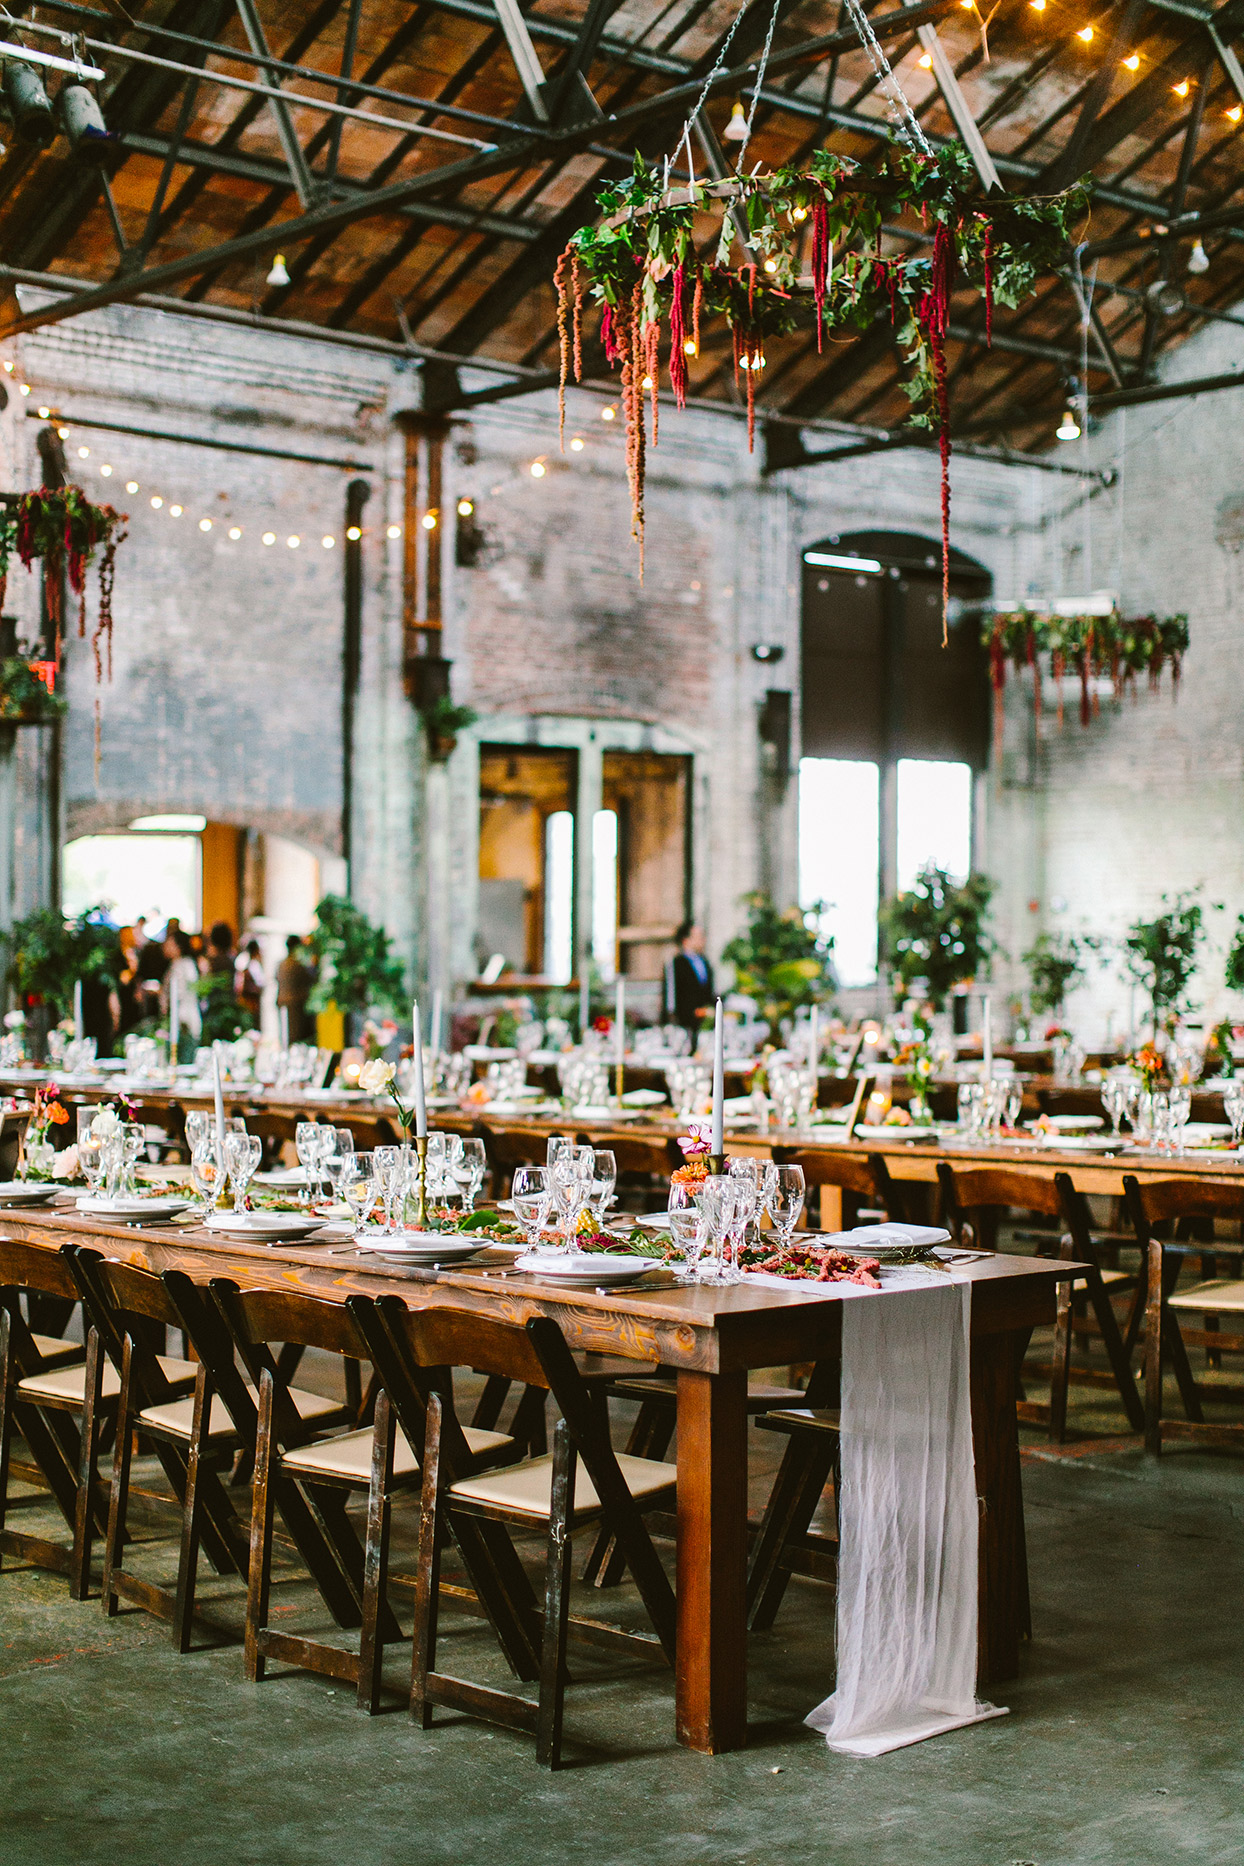 industrial rustic wedding reception set up with long wooden tables and hanging floral decorations